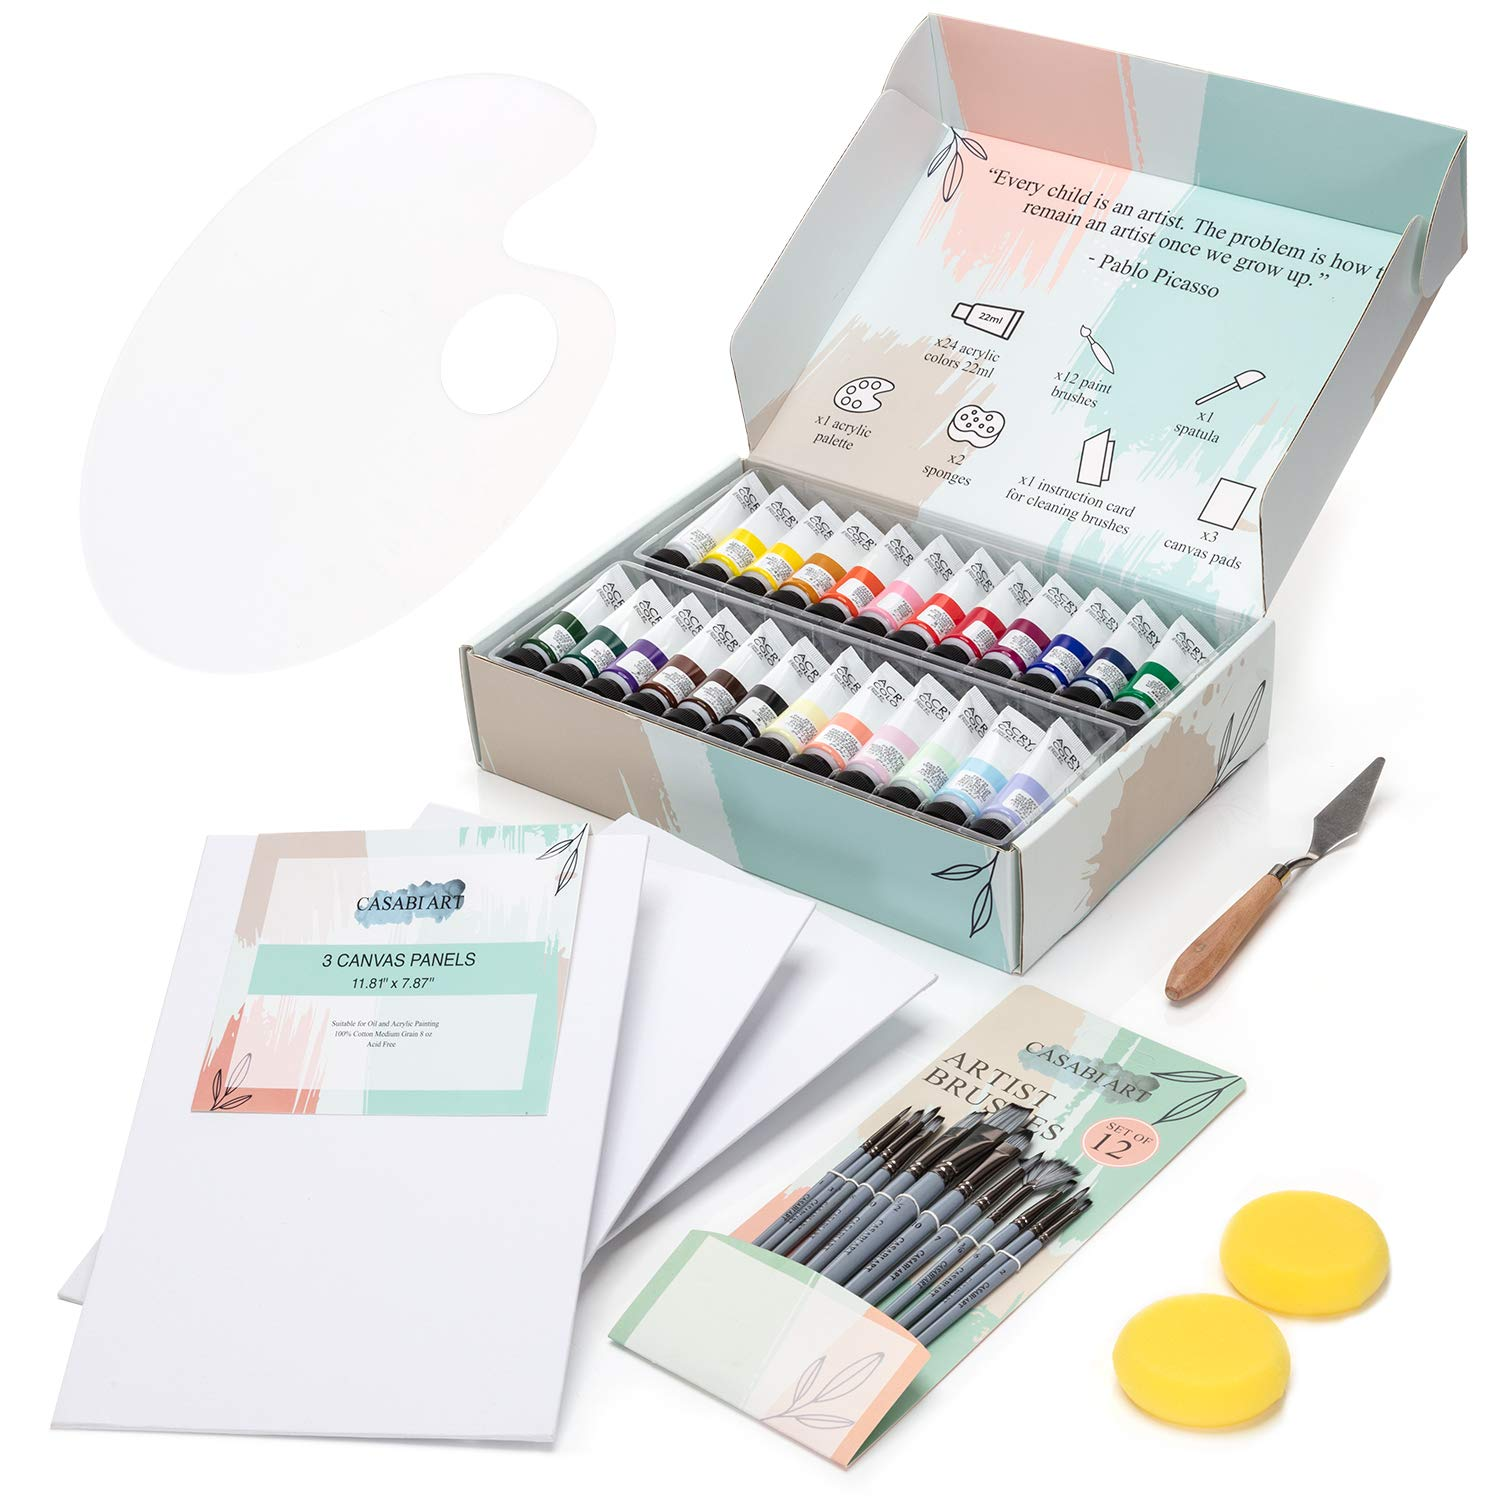 Acrylic Paint Set for The Artist in You: 24 Acrylic Paints (22ml), 12 Paint Brushes, 3 Canvas Pads, 1 Acrylic Palette, 2 Sponges, 1 Painting Knive - Professional Painting Supplies Set - Gift Design